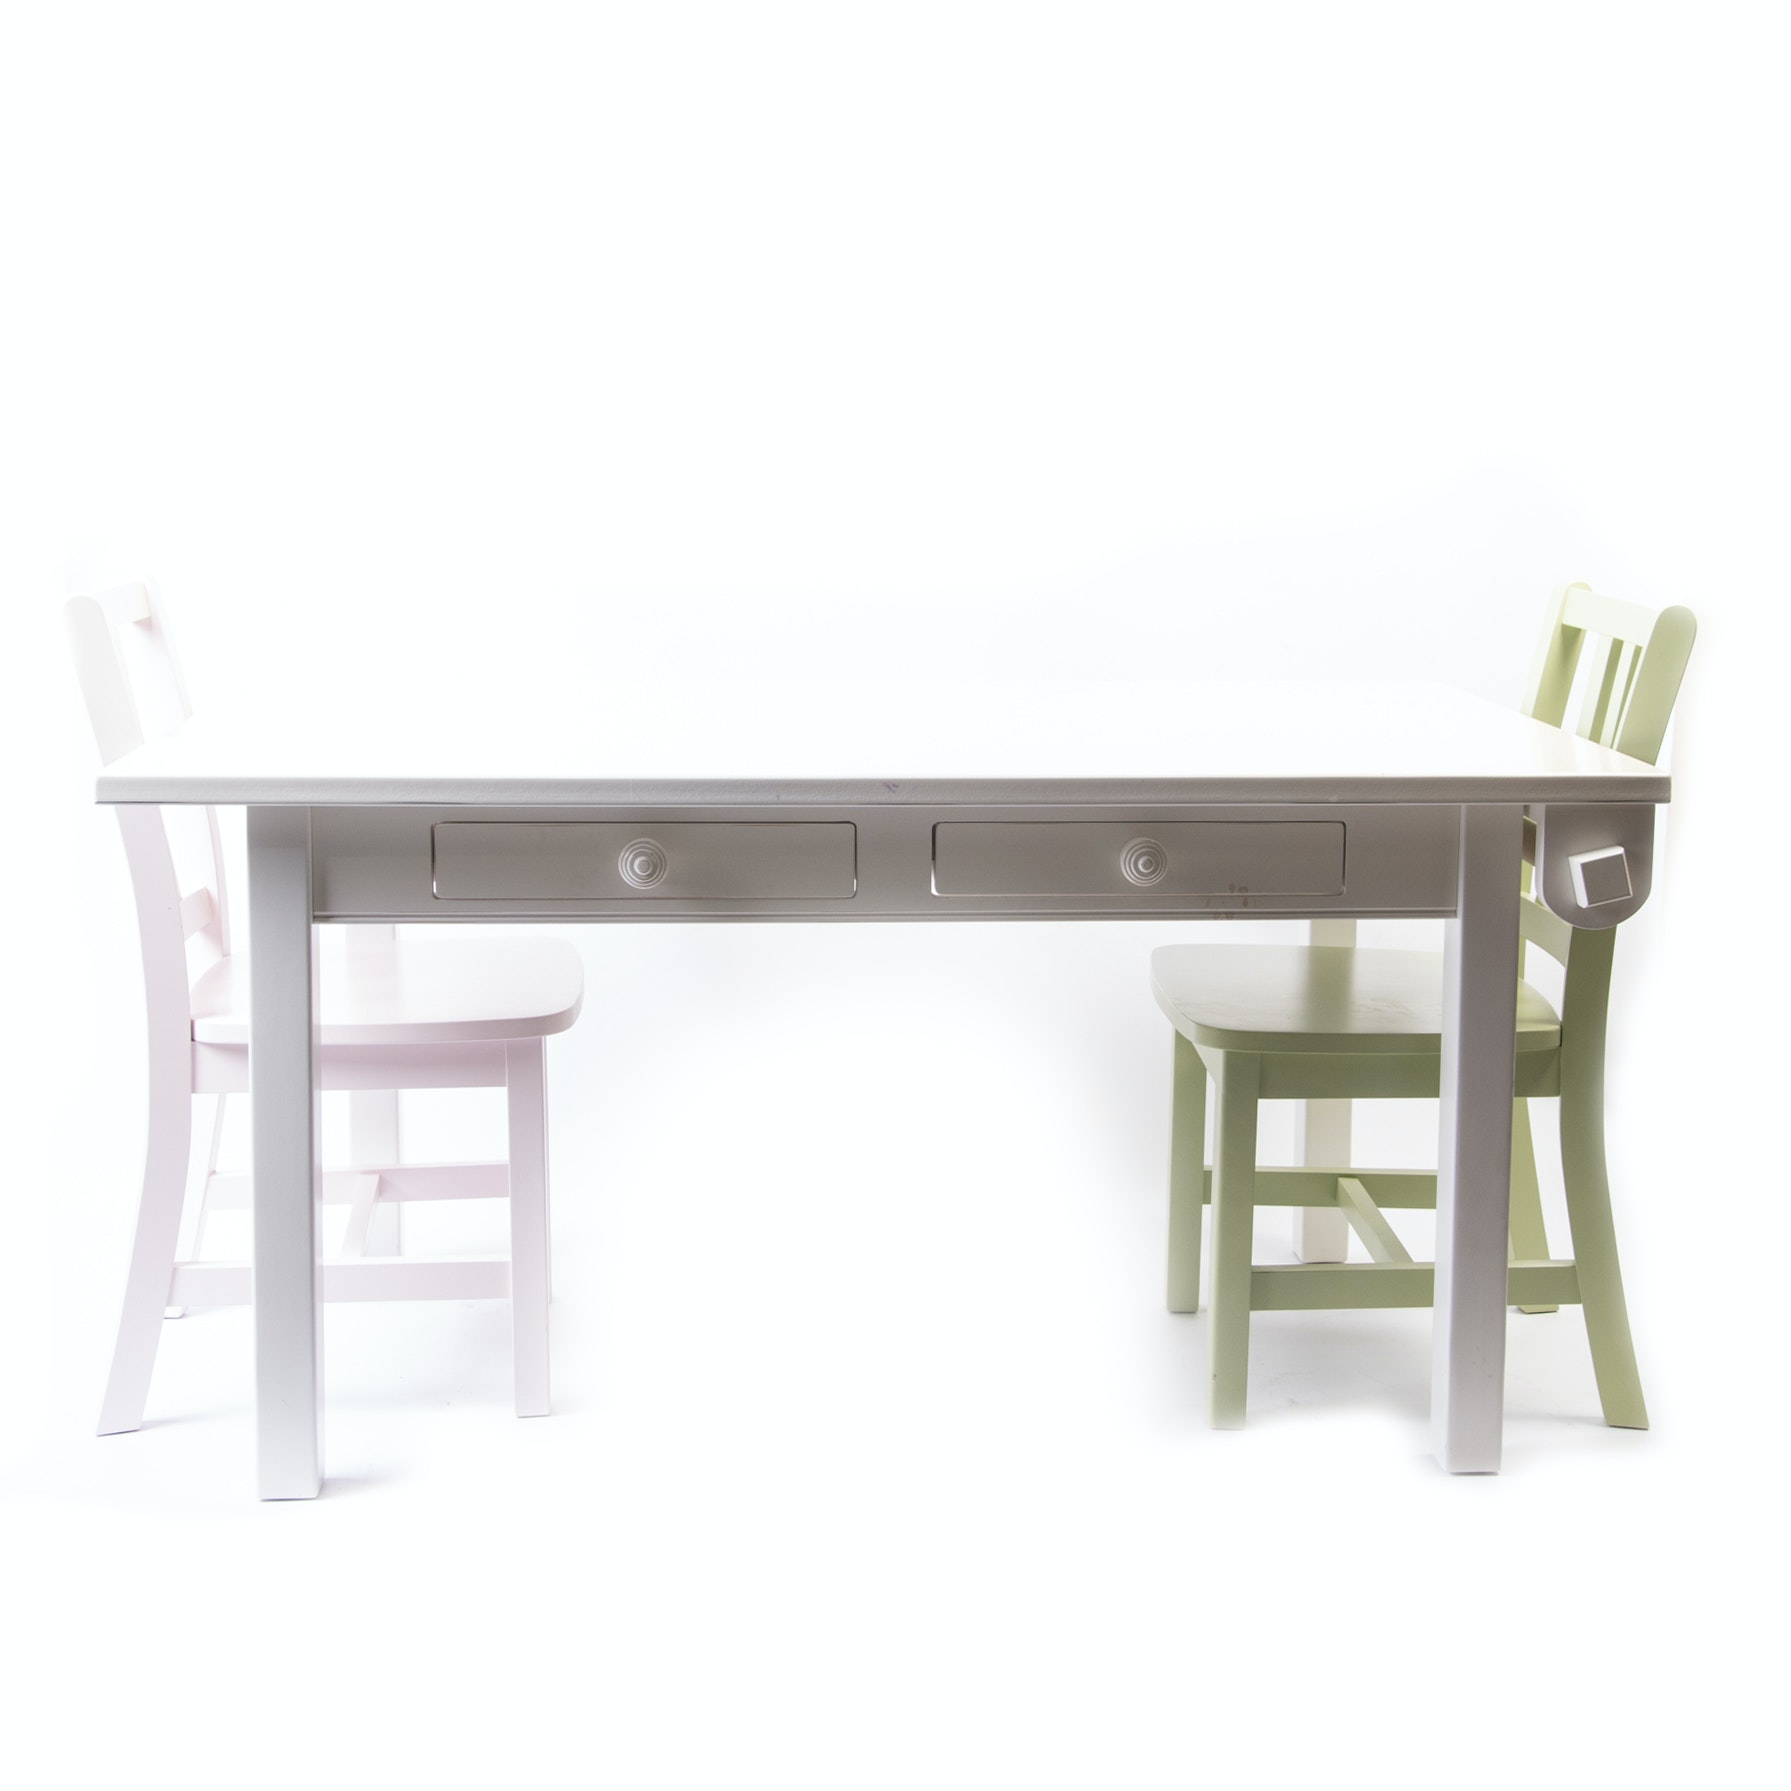 Children's Craft Table with Chairs by The Land of Nod